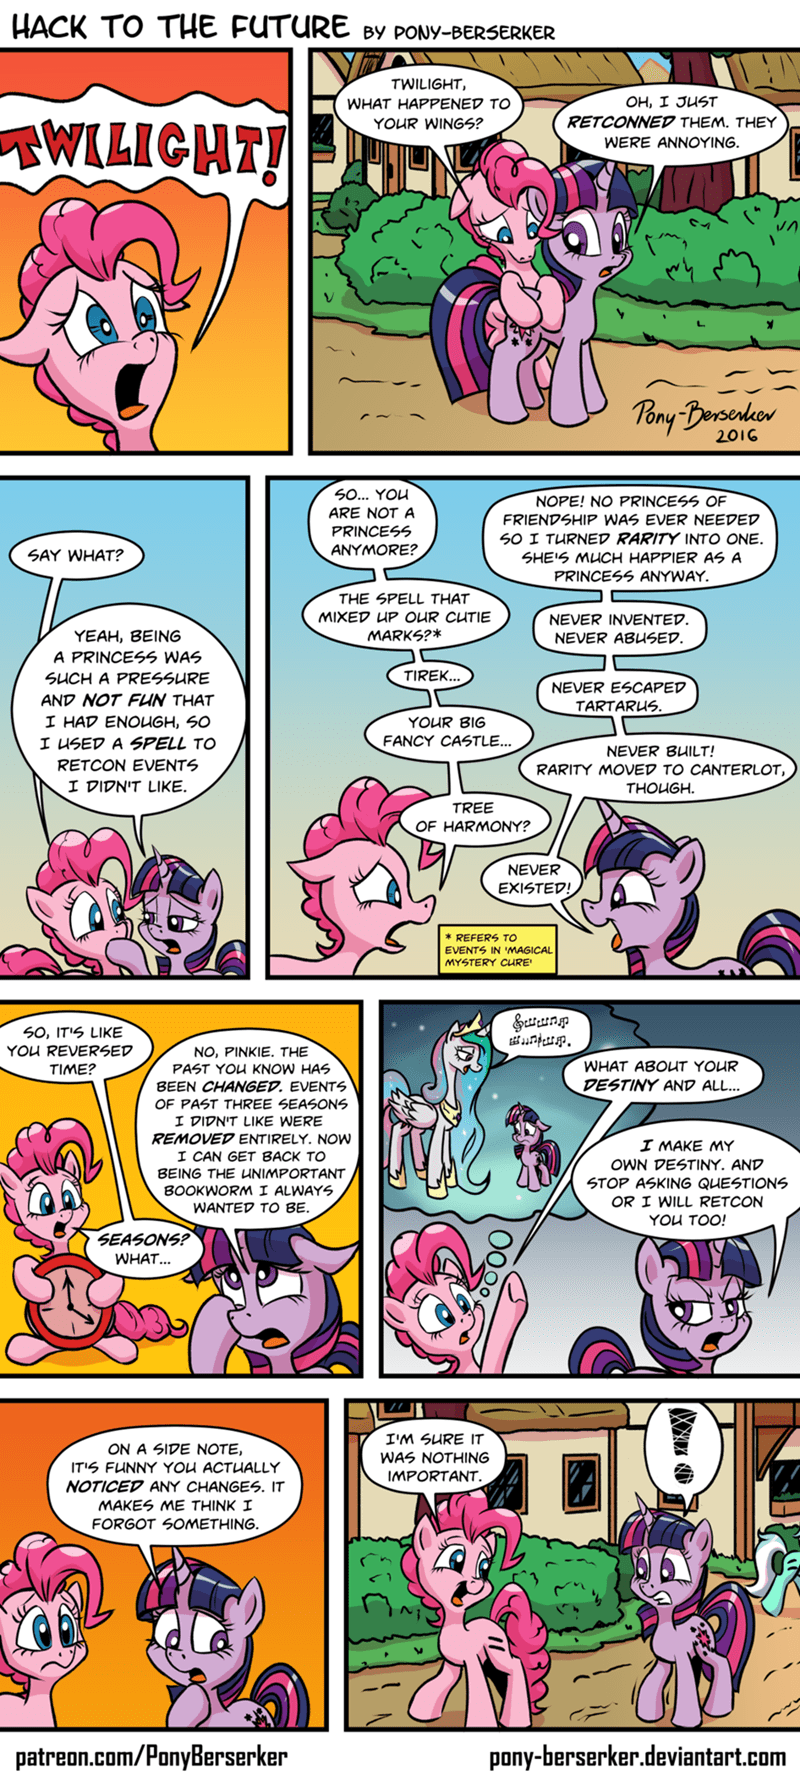 twilight sparkle the cutie map pinkie pie breaking the fourth wall comic magical mystery cure princess celestia - 8965947392